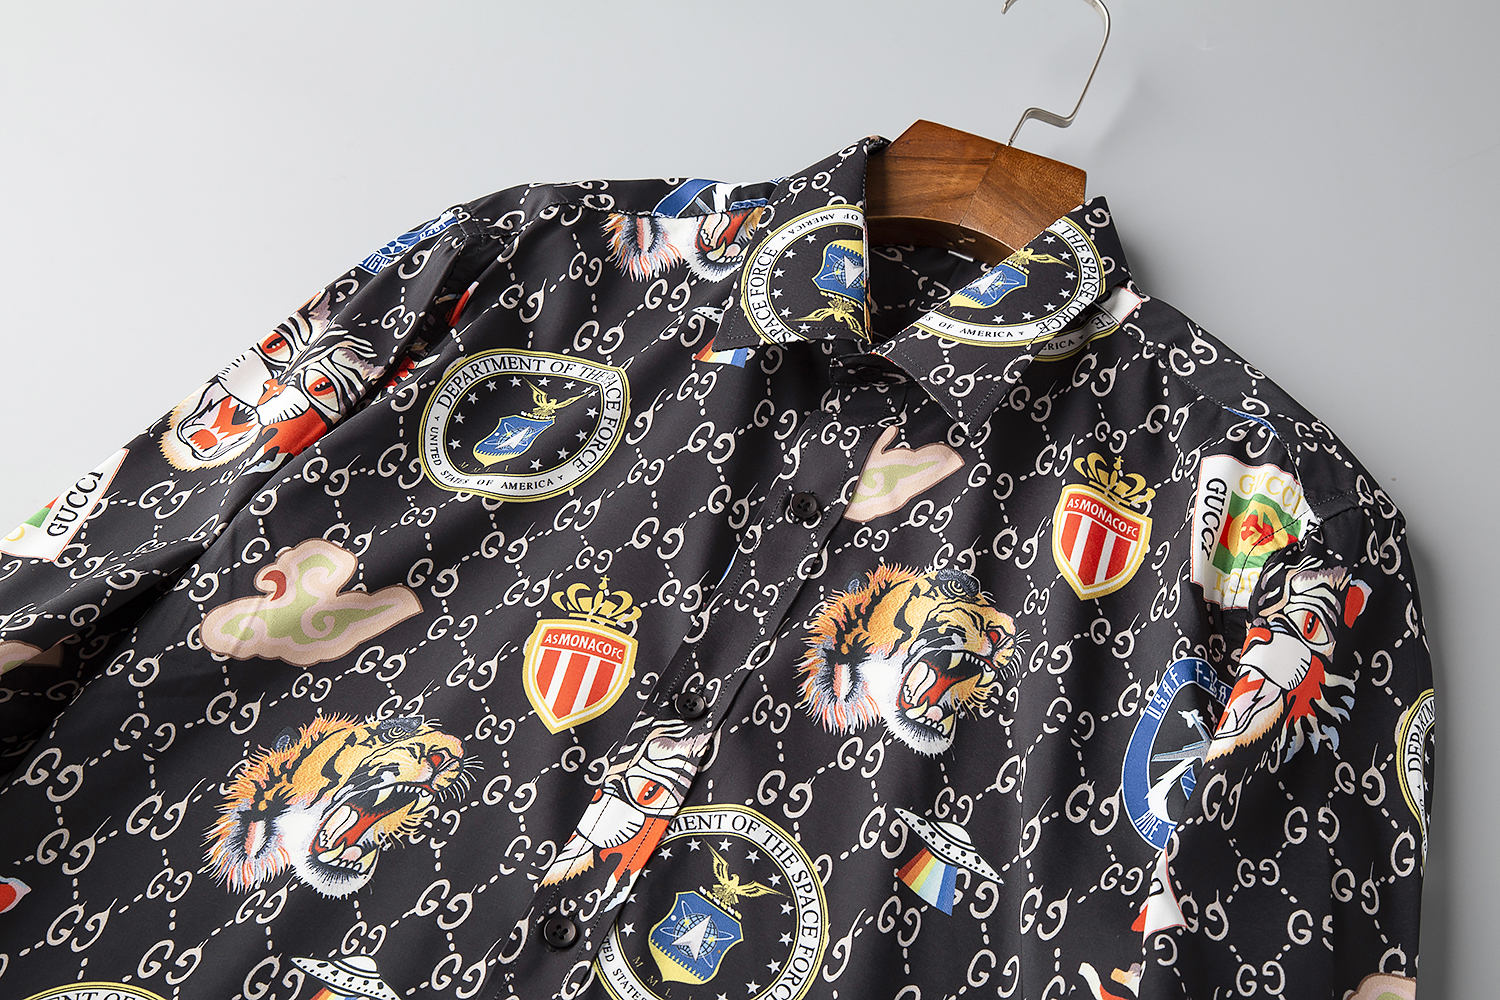 2020 Cheap Gucci Sleeve Shirts For Men in 215824, cheap Gucci shirt, only $29!